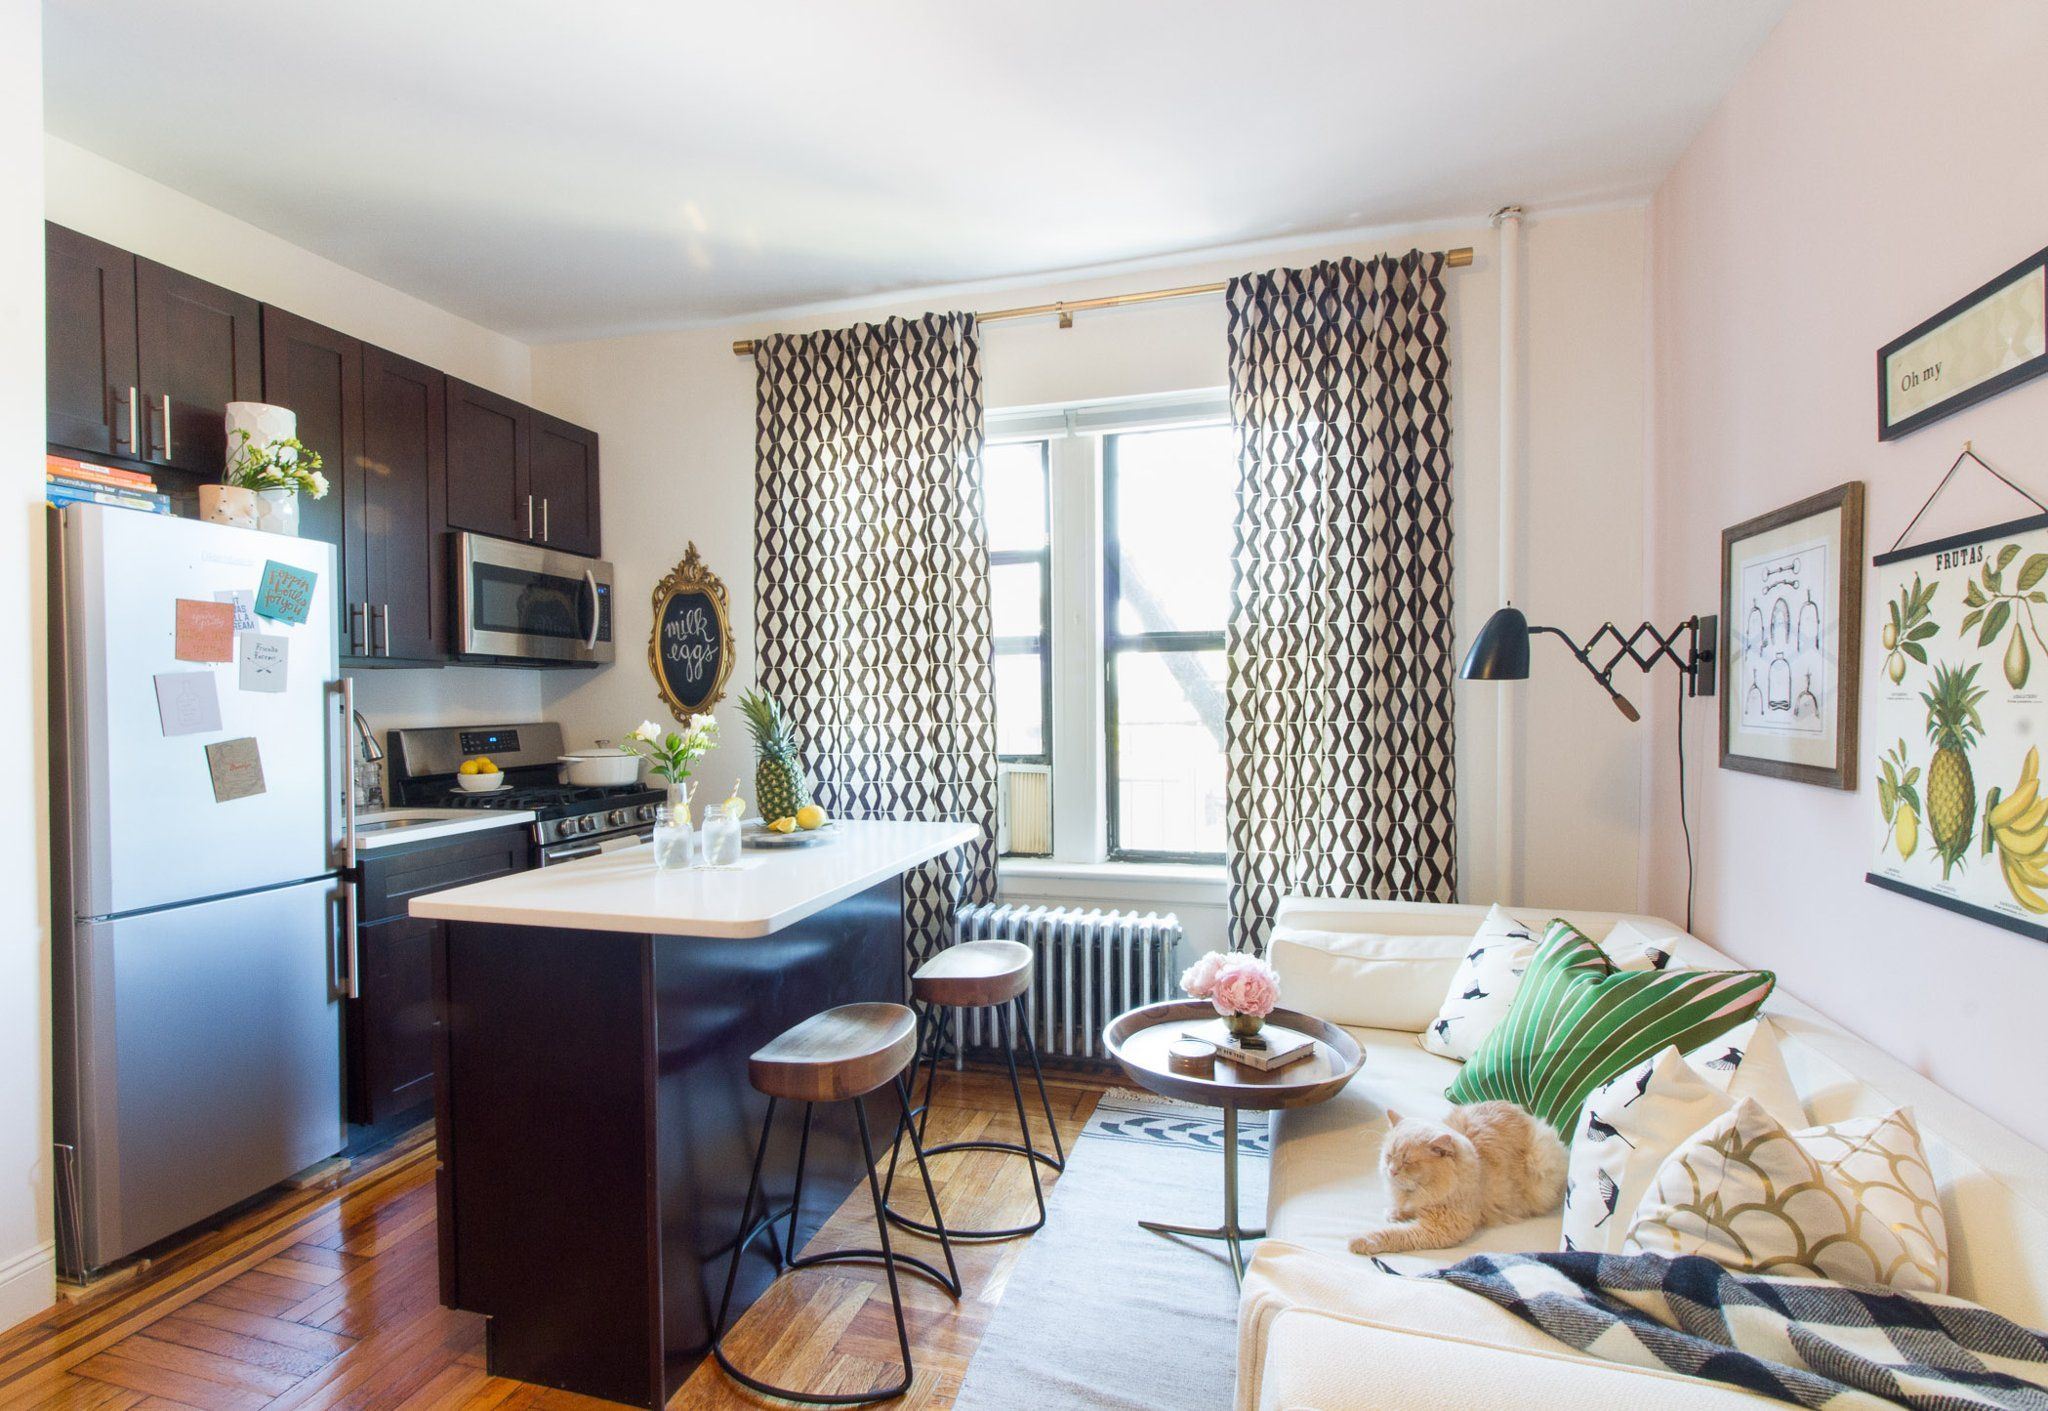 This 320 Square Foot Studio Is The Perfect Example Of How To Do Small Space Living Small Space Living Room Small Space Living Decorating Small Spaces Bedroom